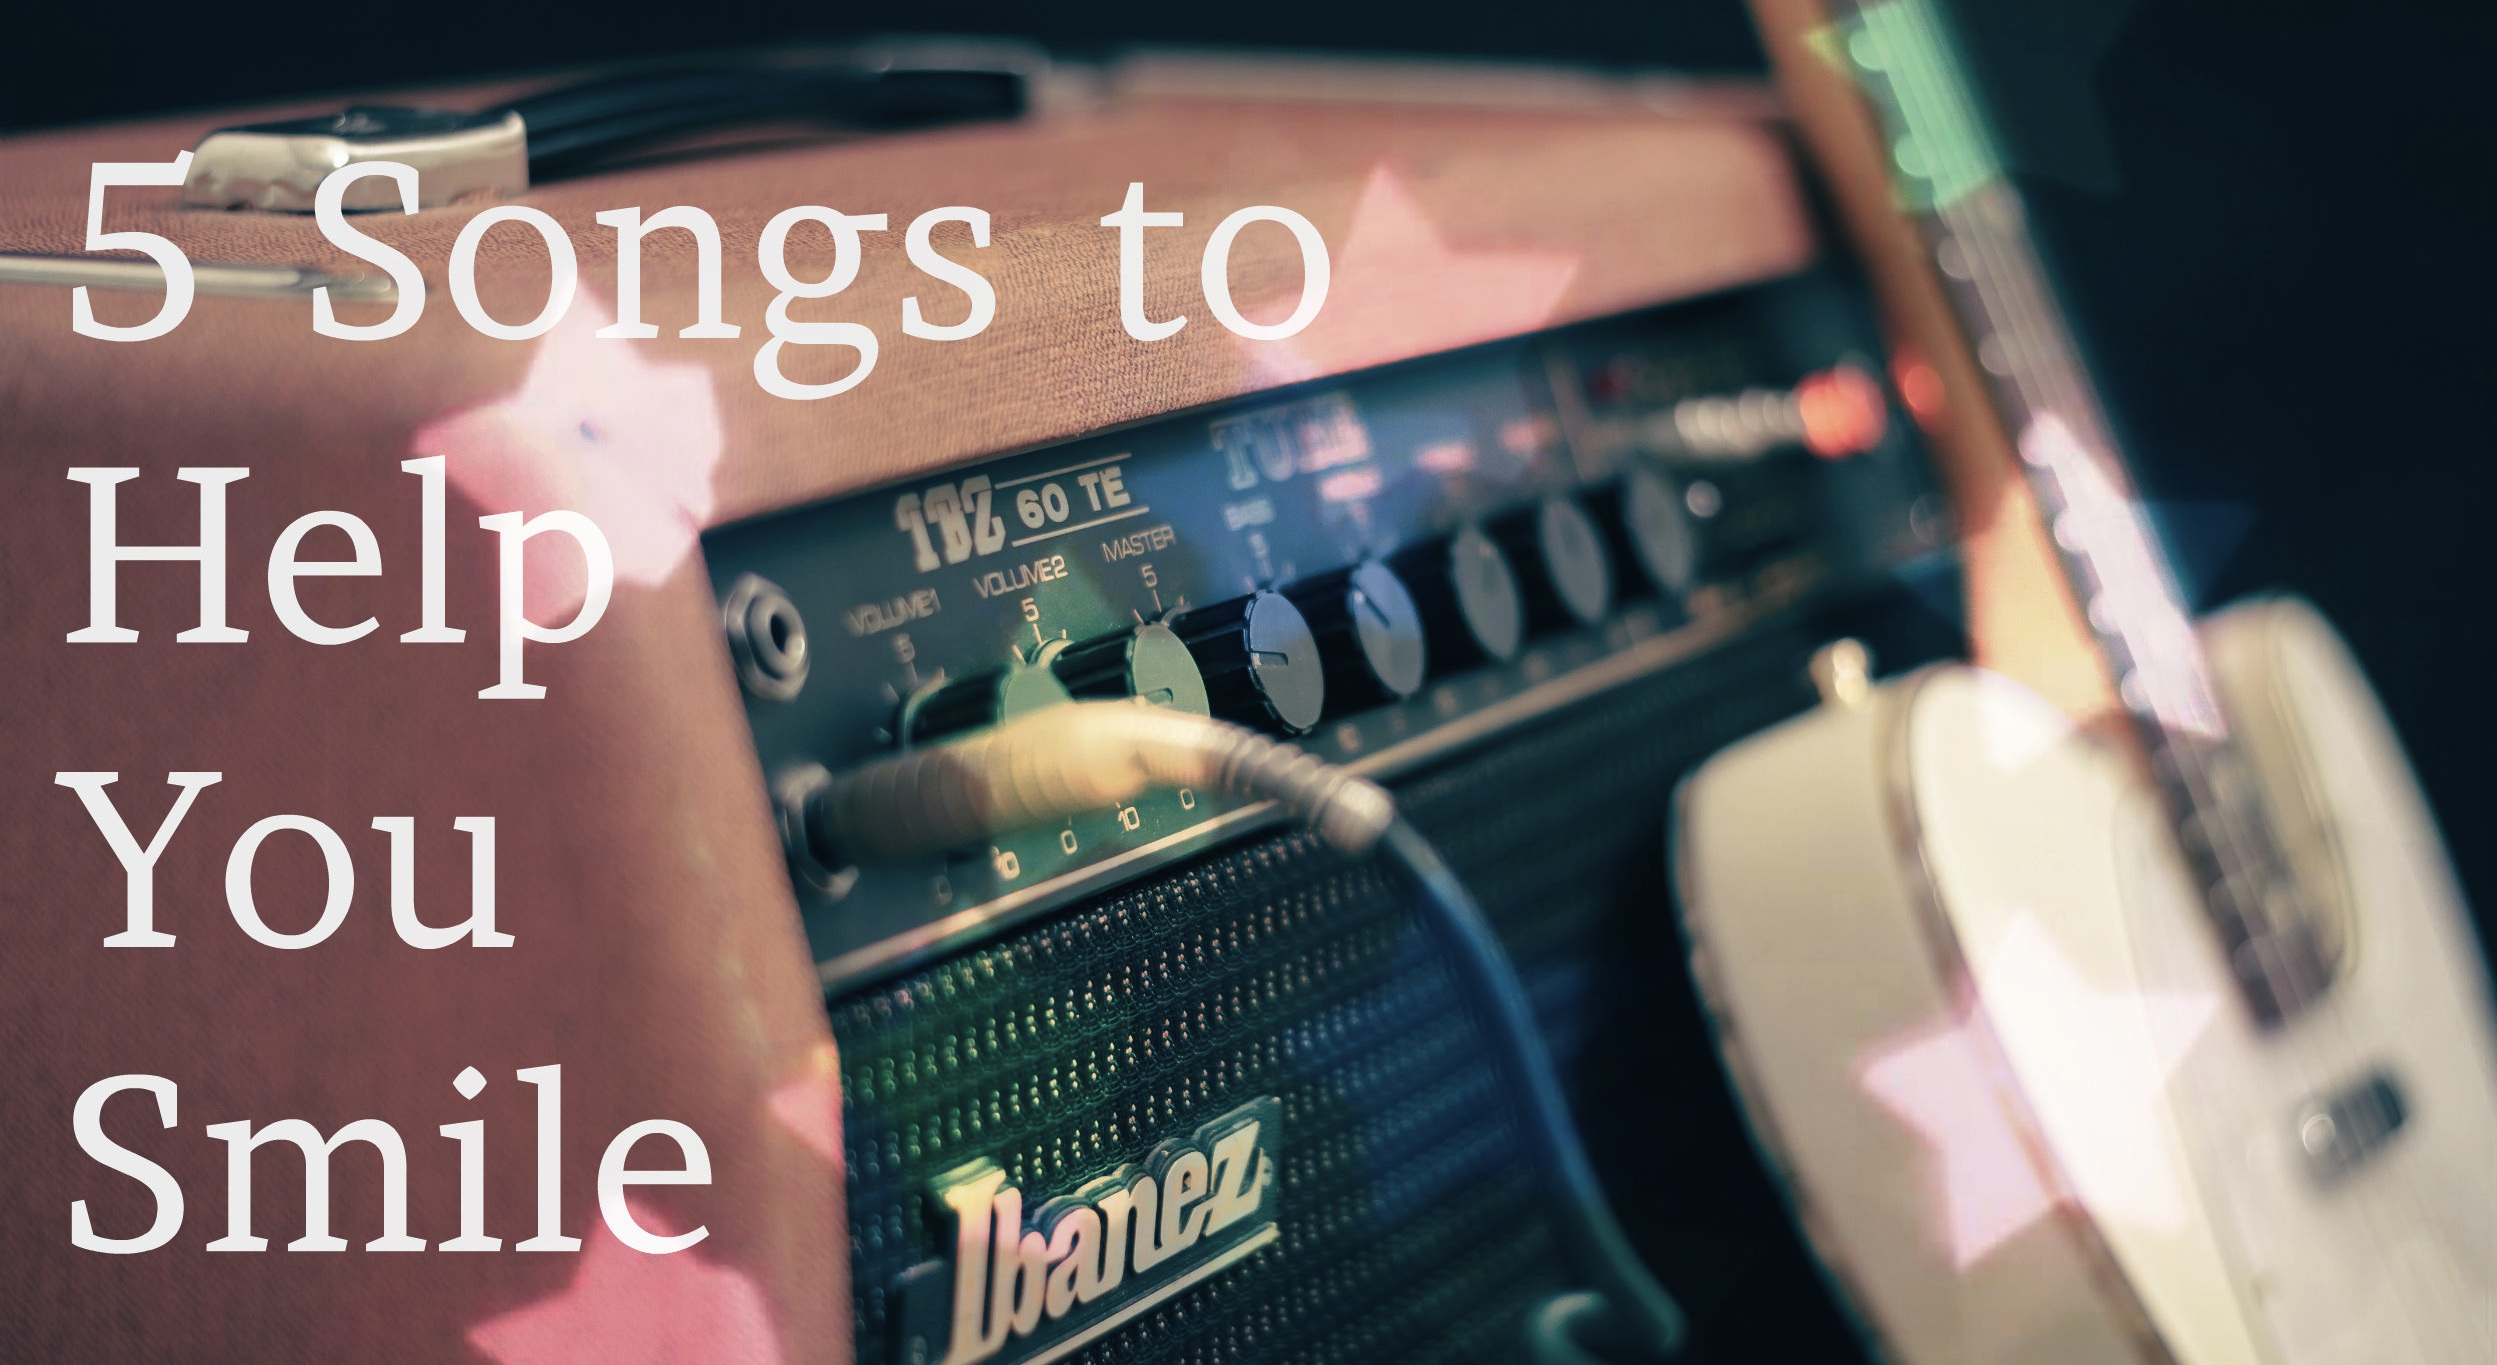 5 songs to help you smile - white text over image of pink amplifier and guitar with heart shaped star bokeh